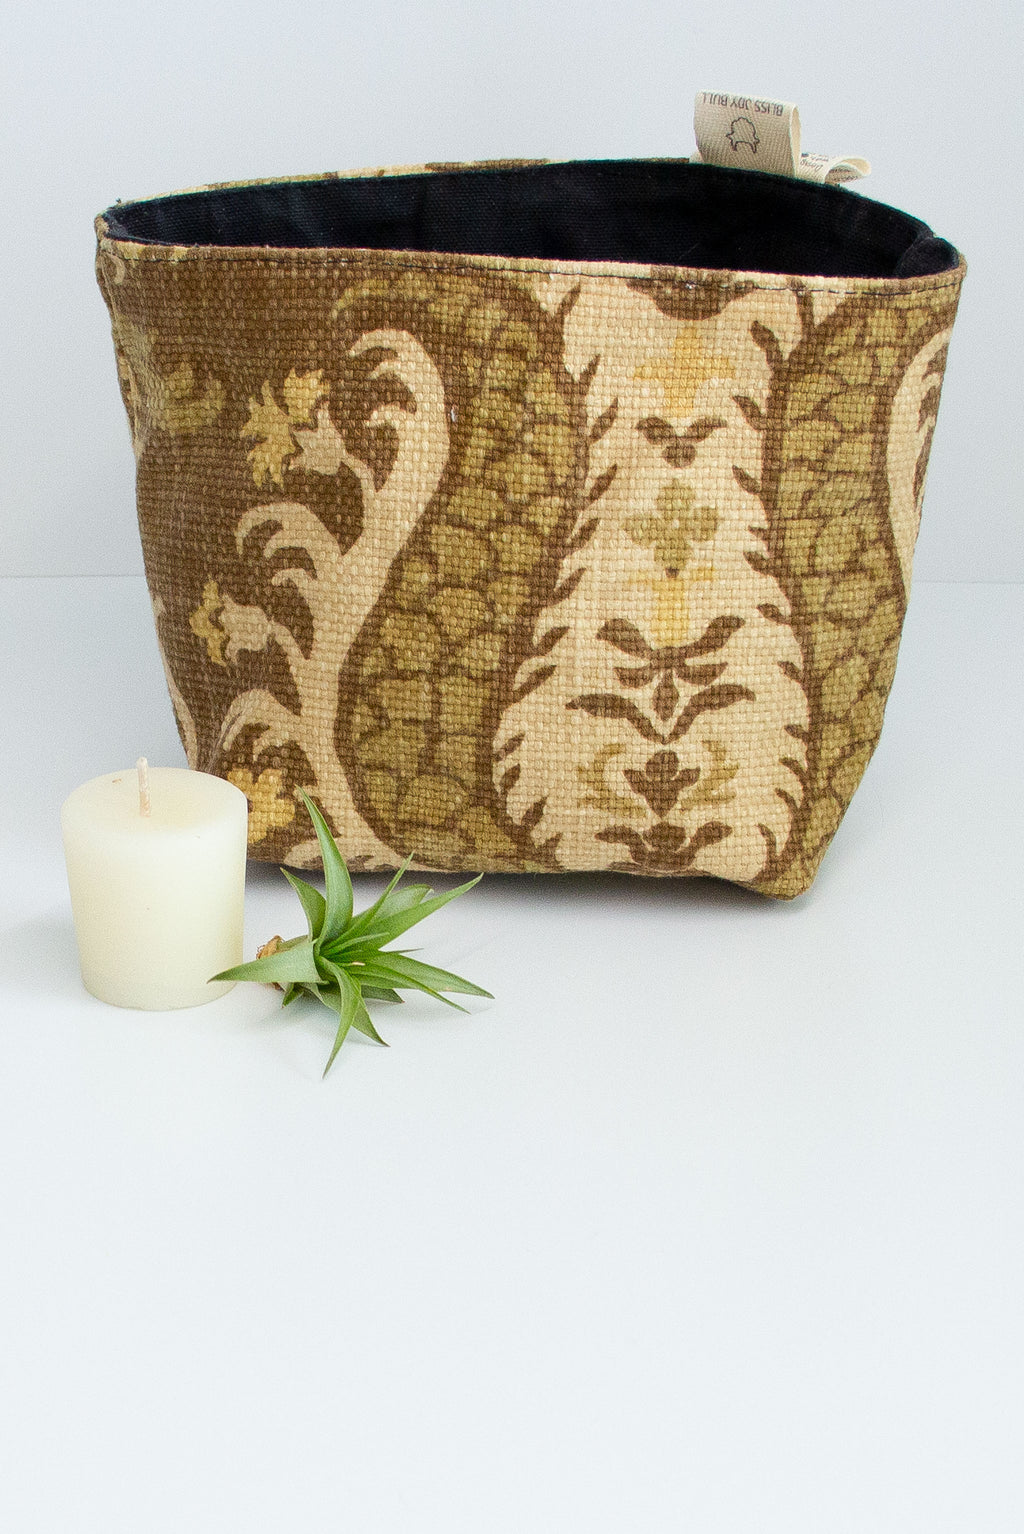 A fabric basket in light yellow and dark olive fleur de lis pattern with a black lining. A small votive candle and air plant sit next to it on a white background.